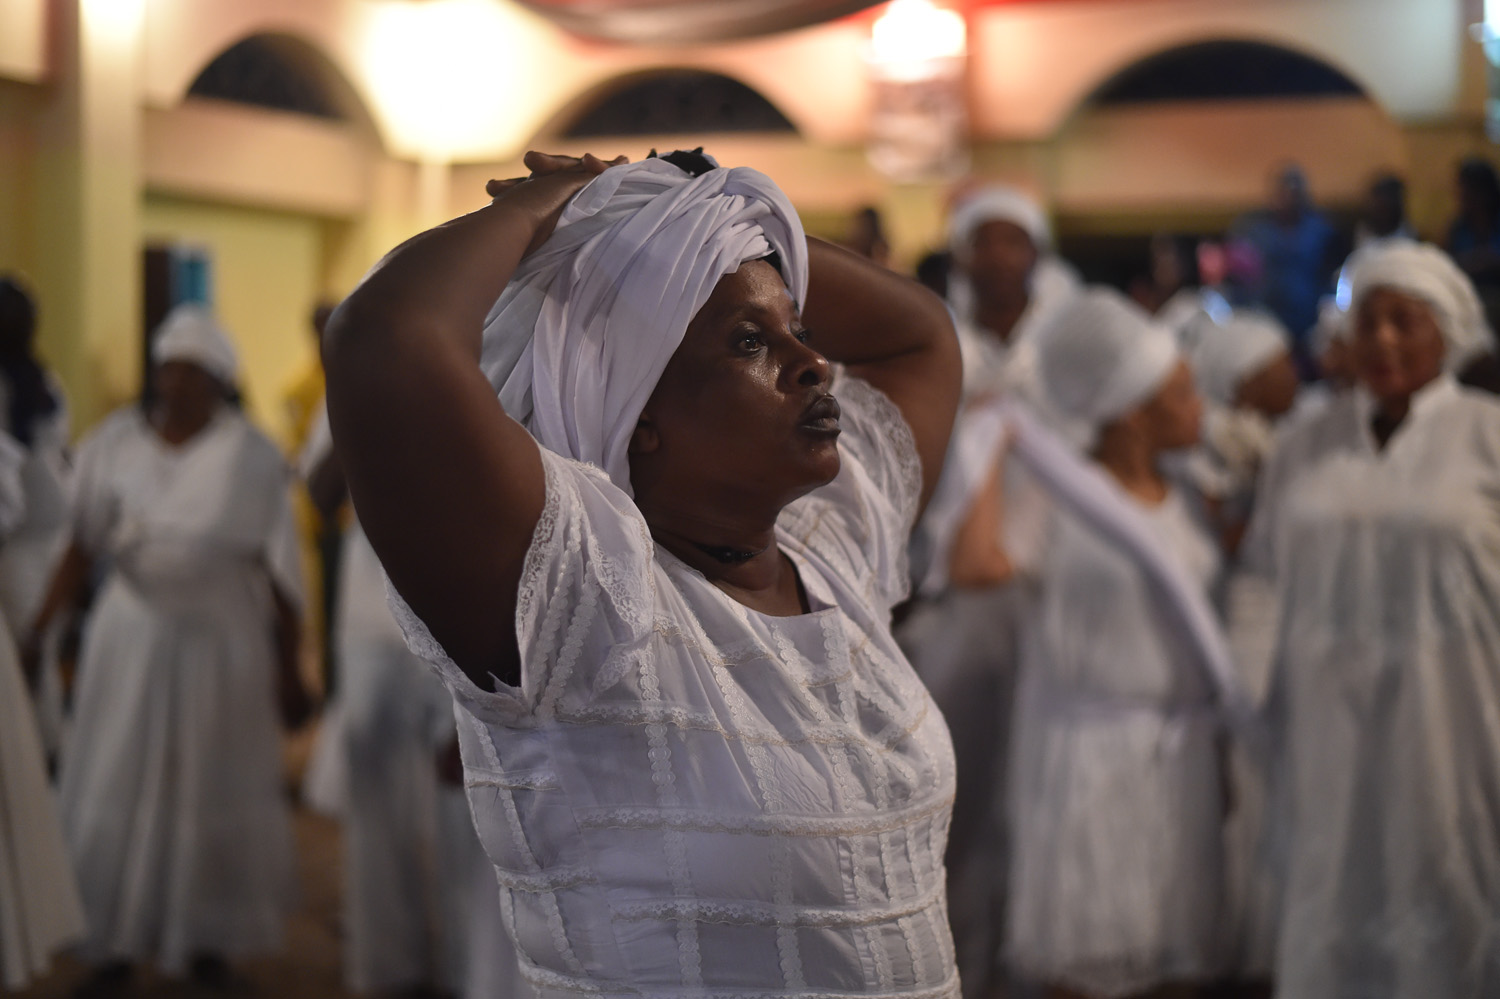 Haitian voodoo followers wearing white clothes participate in a voodoo ceremony in Souvenance, a suburb of Gonaives, 171km north of Port-au-Prince, on March 31, 2018. Haitian voodoo followers arrived in Souvenance to take part in the voodoo ceremonies held during Easter weekend. / AFP PHOTO / Hector RETAMAL